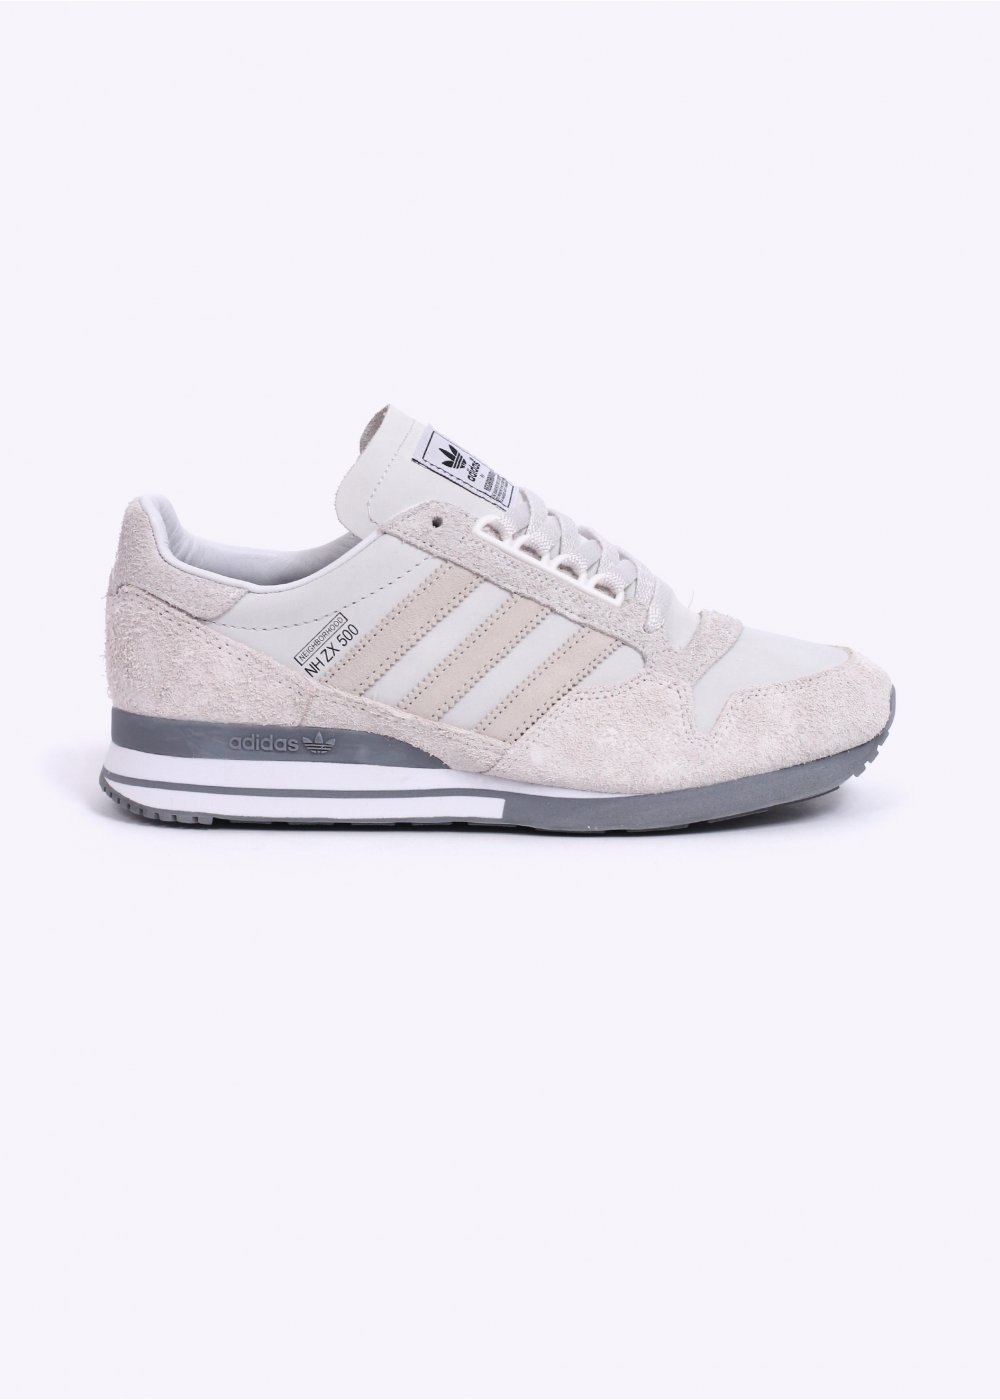 4b026dd6f adidas Originals x NBHD ZX 500 OG Trainers - White   Grey